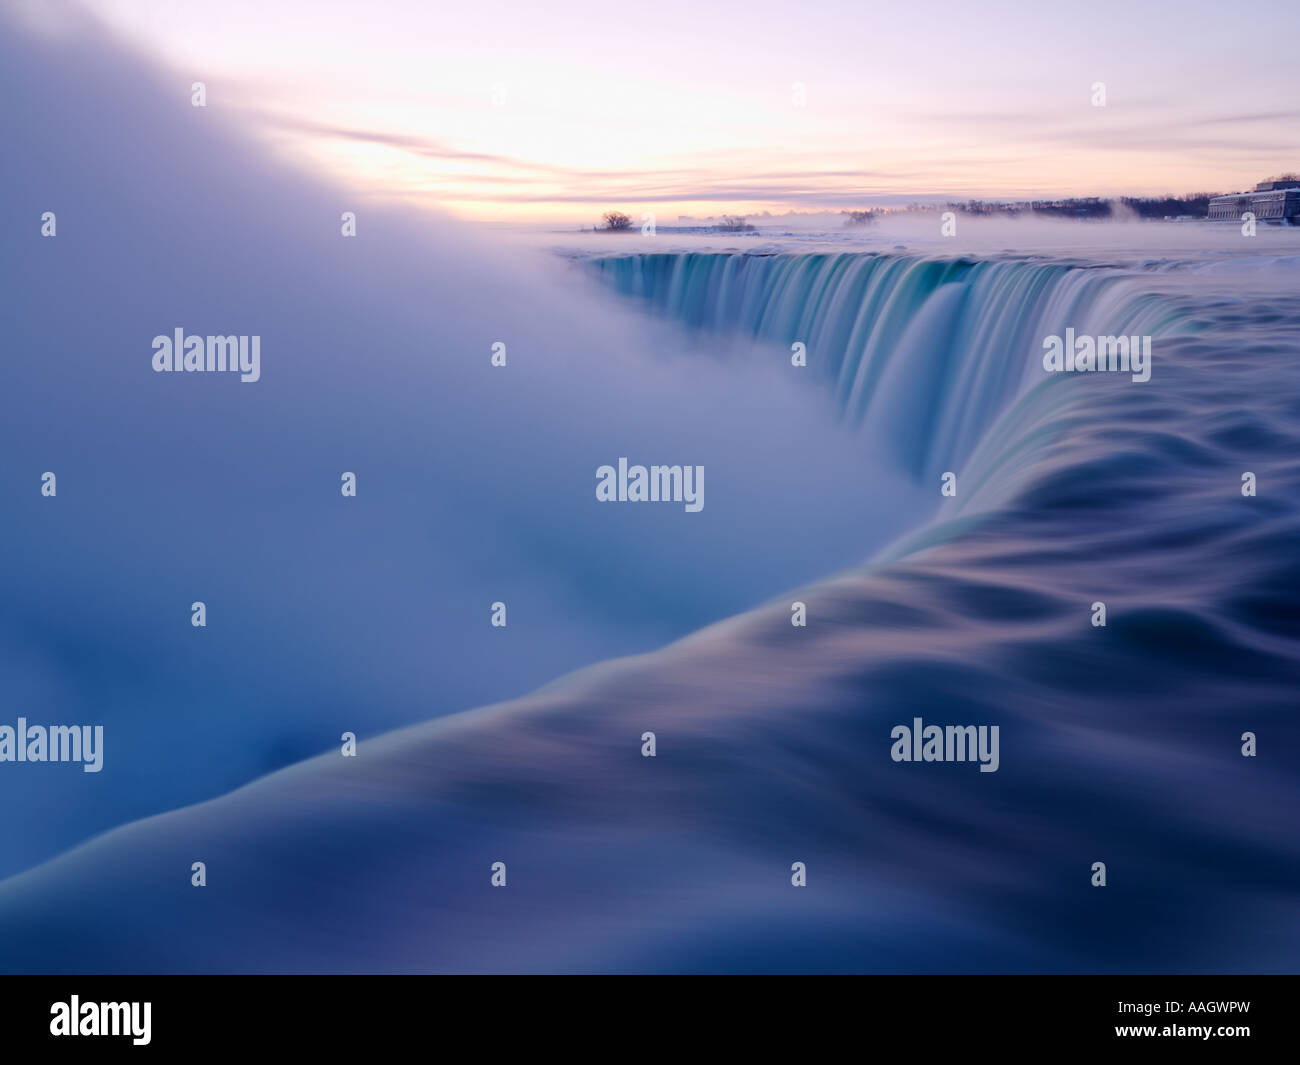 Canada Ontario Niagara Falls Photo Stock